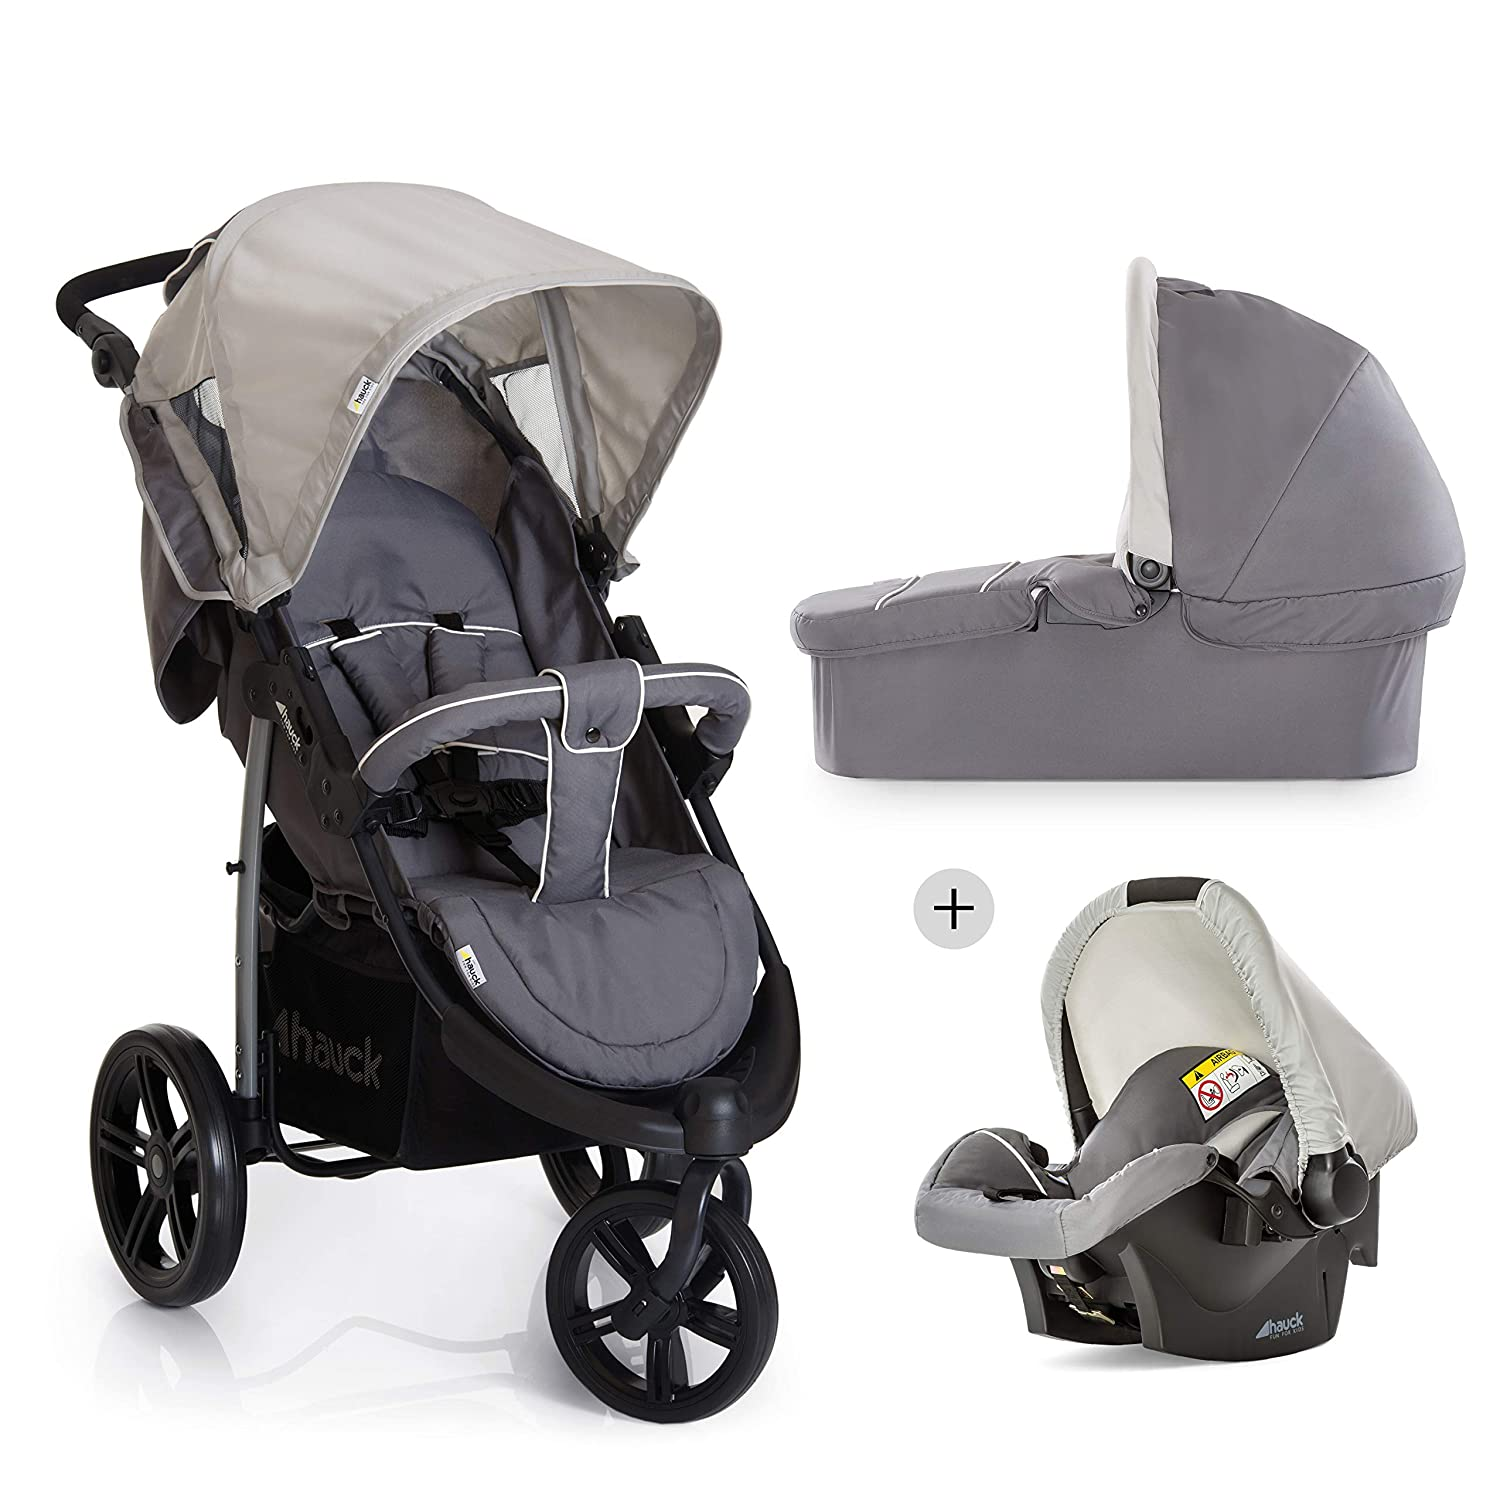 Hauck Disney Baby Viper Trio Set Travel System, from Birth to 15kg, Pooh Tidy Time (Car Seat, Carry Cot, 3 Wheel and Raincover) H-31217